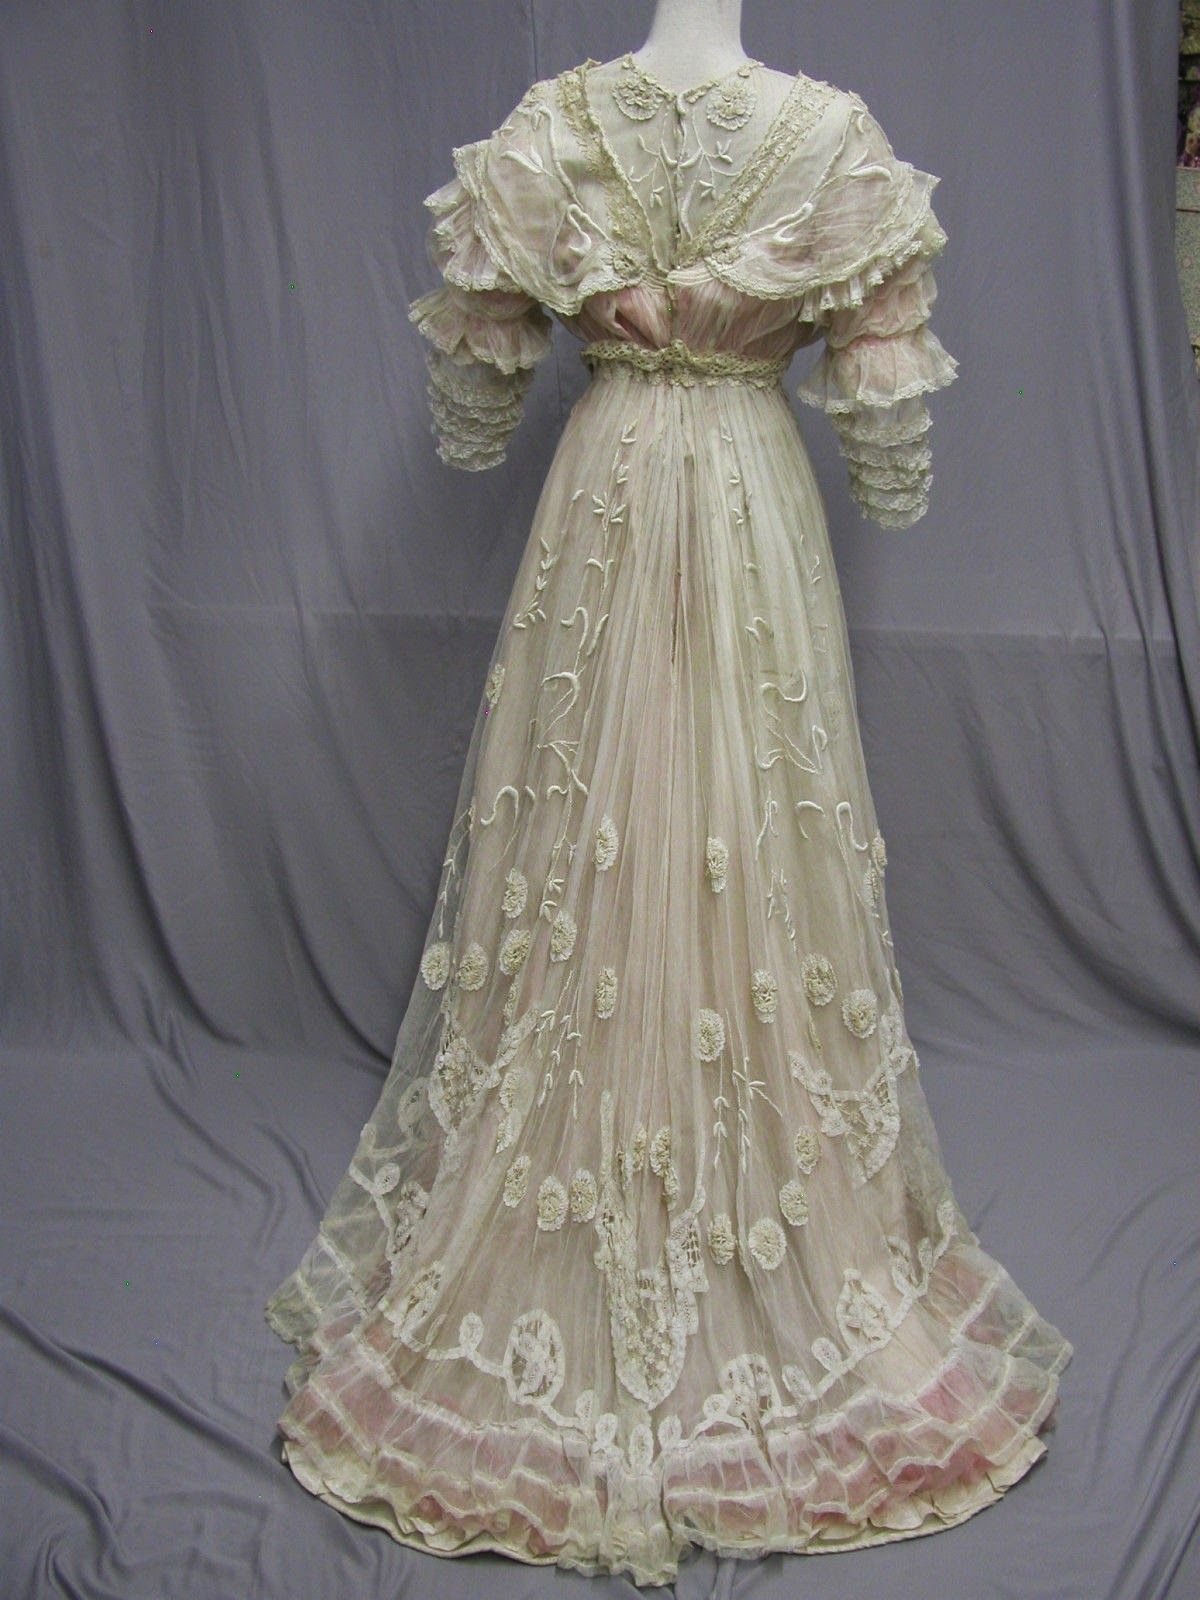 All The Pretty Dresses A Summer Time Confection Edwardian Dress Edwardian Dress Vintage Dresses Vintage Gowns [ 1600 x 1200 Pixel ]